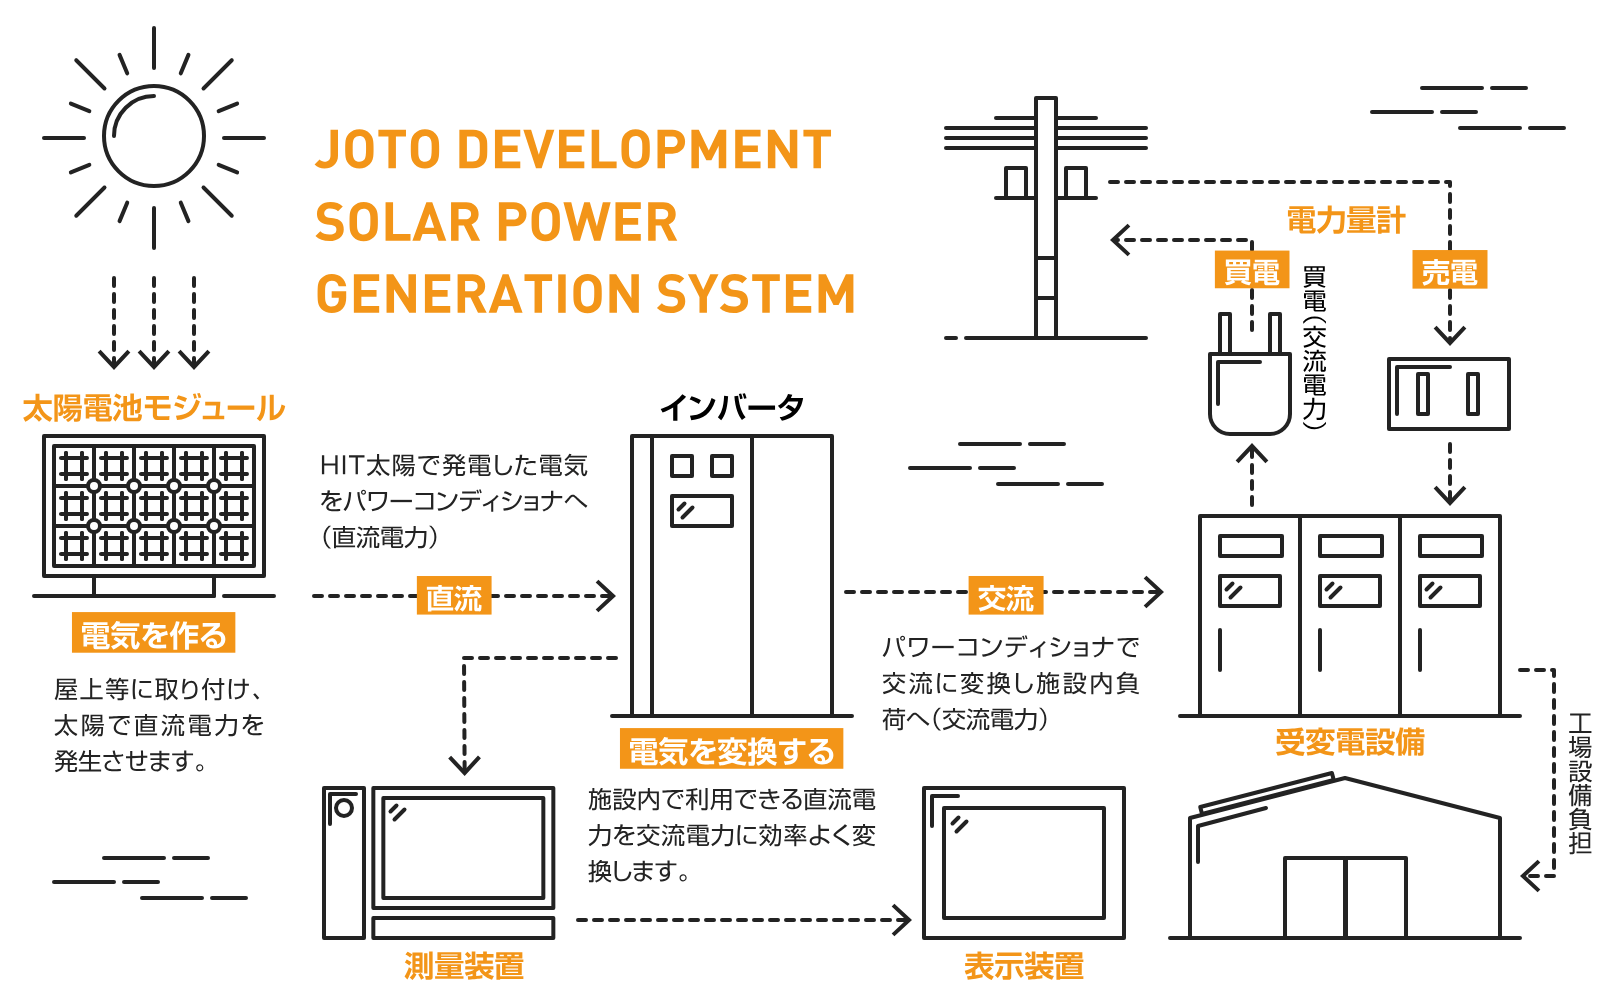 イメージ:SOLAR POWER GENERATION SYSTEM